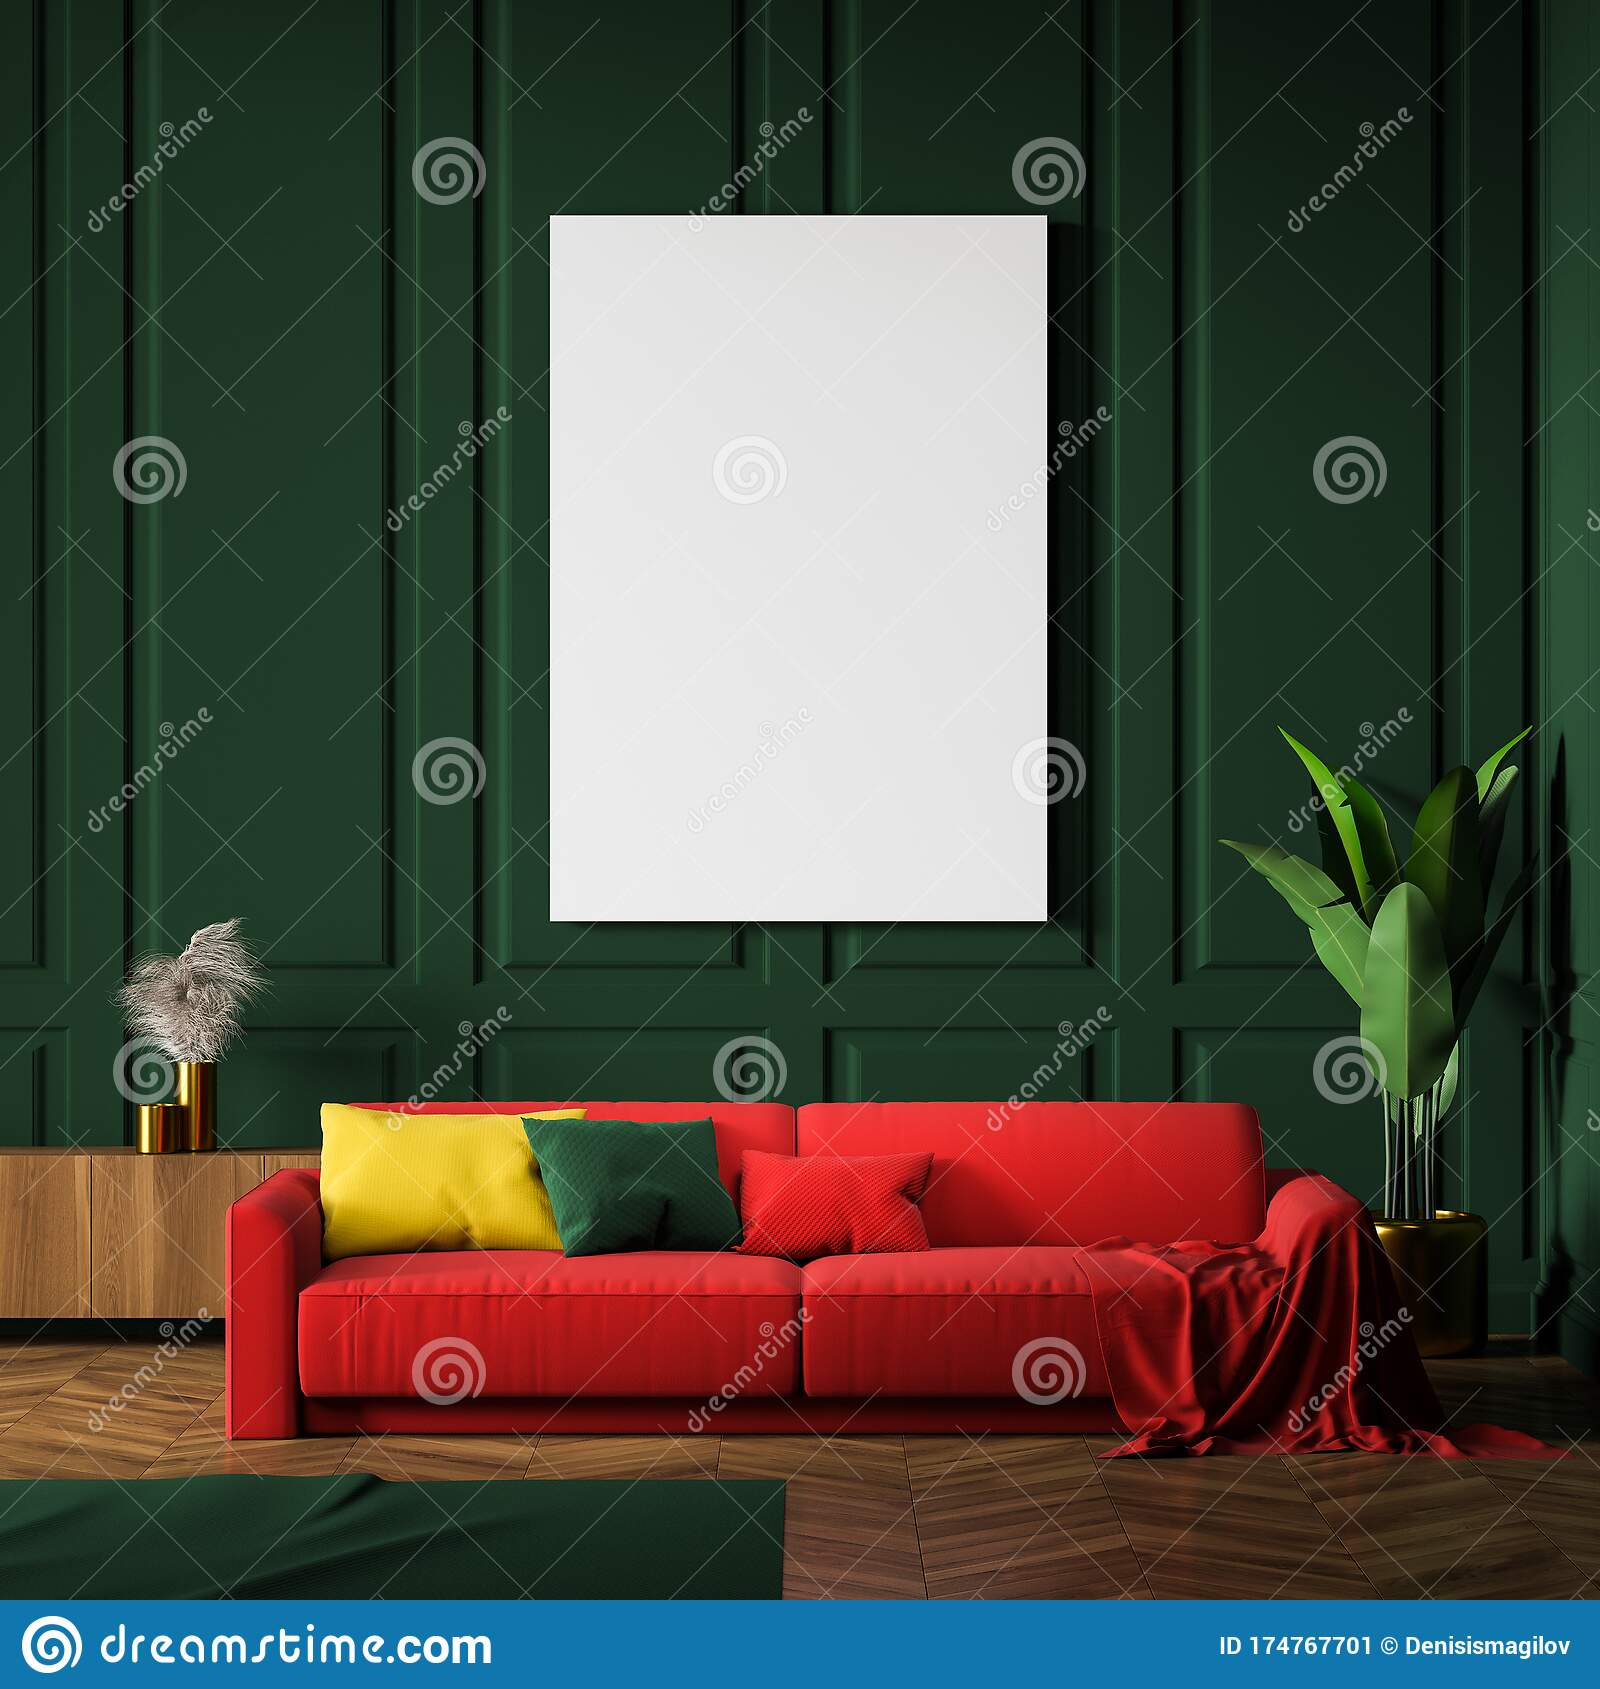 Green Living Room Interior Red Sofa And Poster Stock Illustration Illustration Of Mock Lounge 174767701